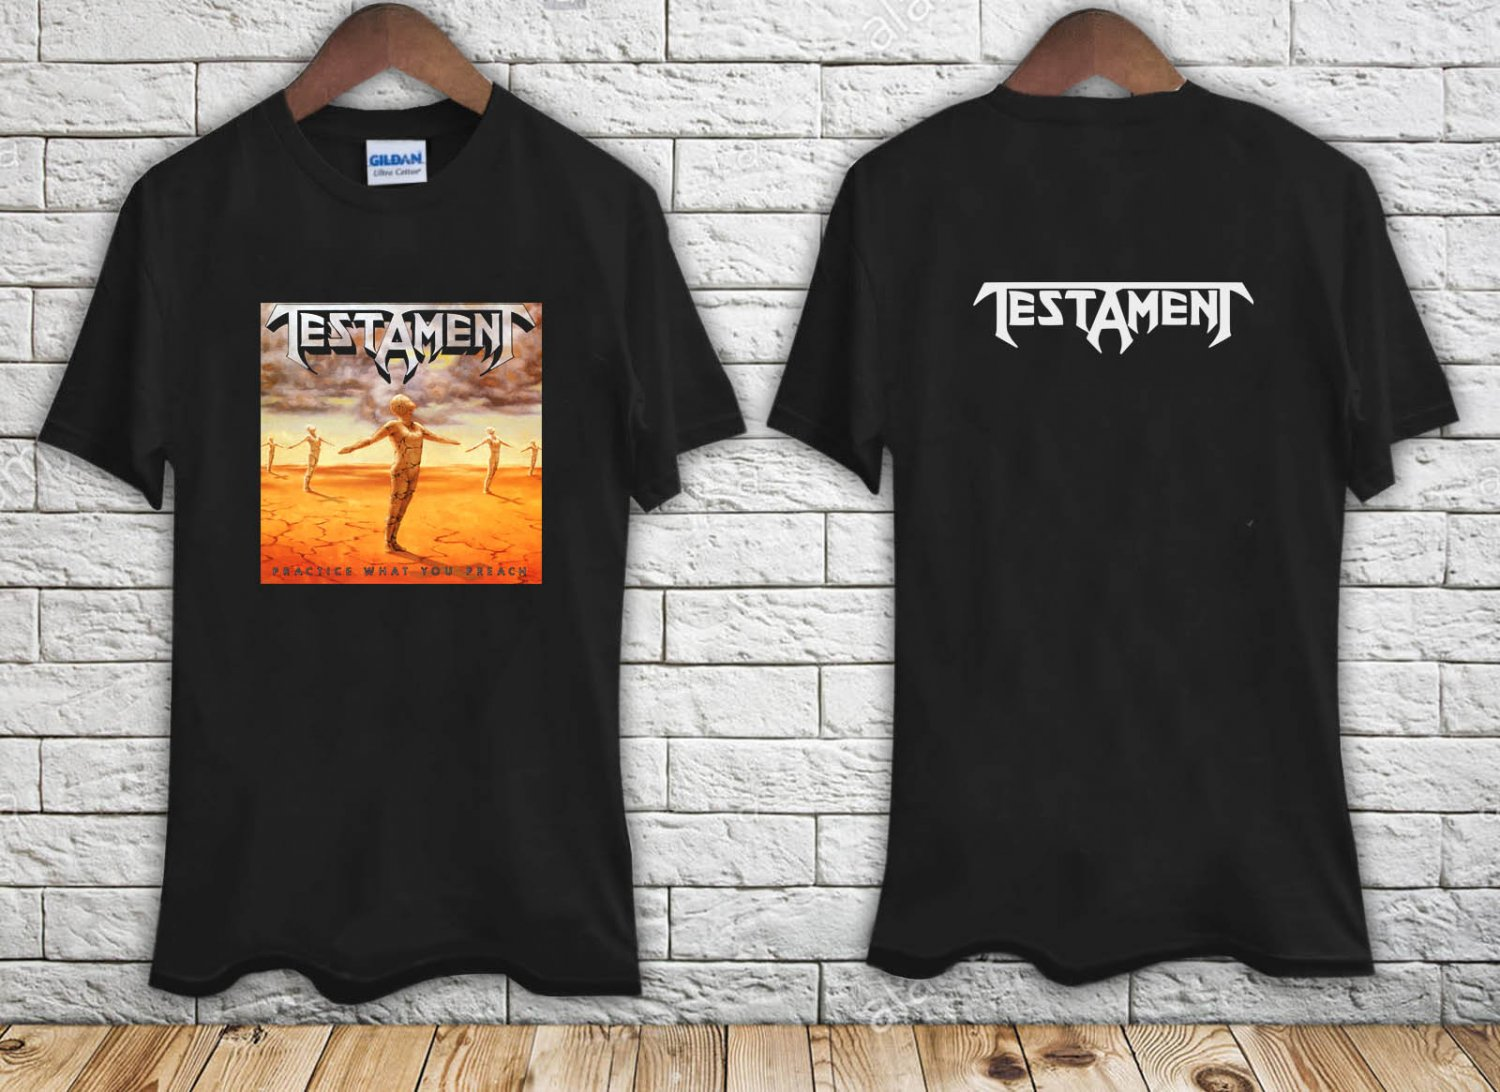 TESTAMENT PRACTICE WHAT YOU PREACH 89 THRASH MEGADETH black t-shirt tshirt shirts tee SIZE XL